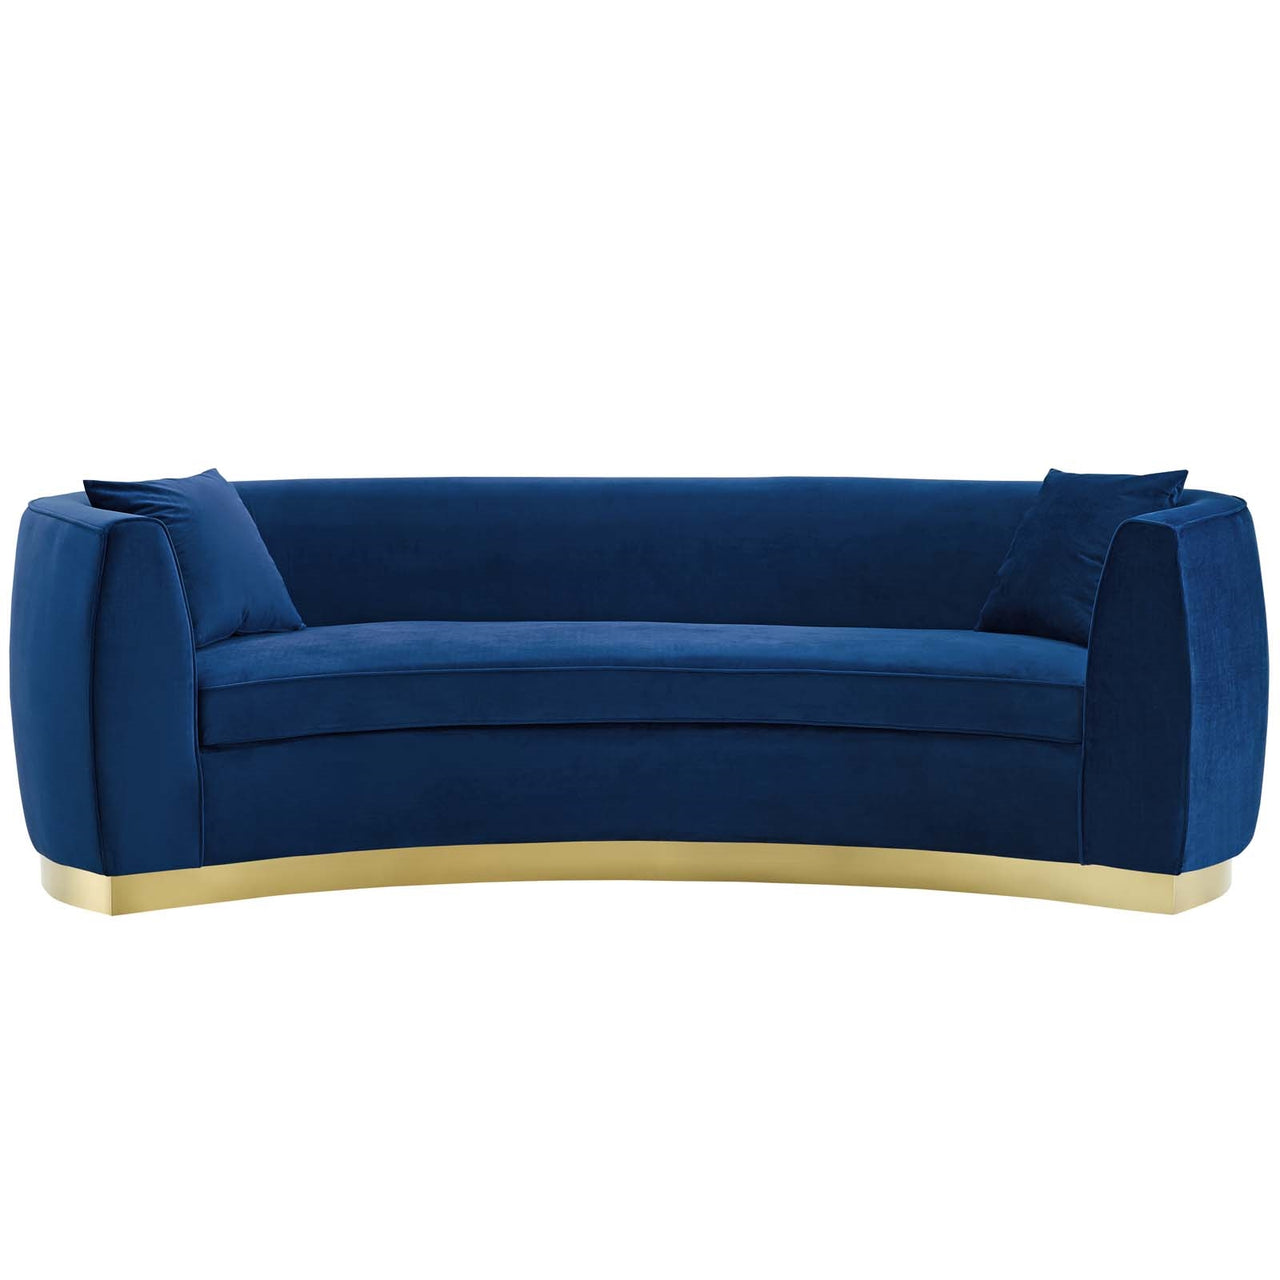 Curvy Velvet Sofa in Navy